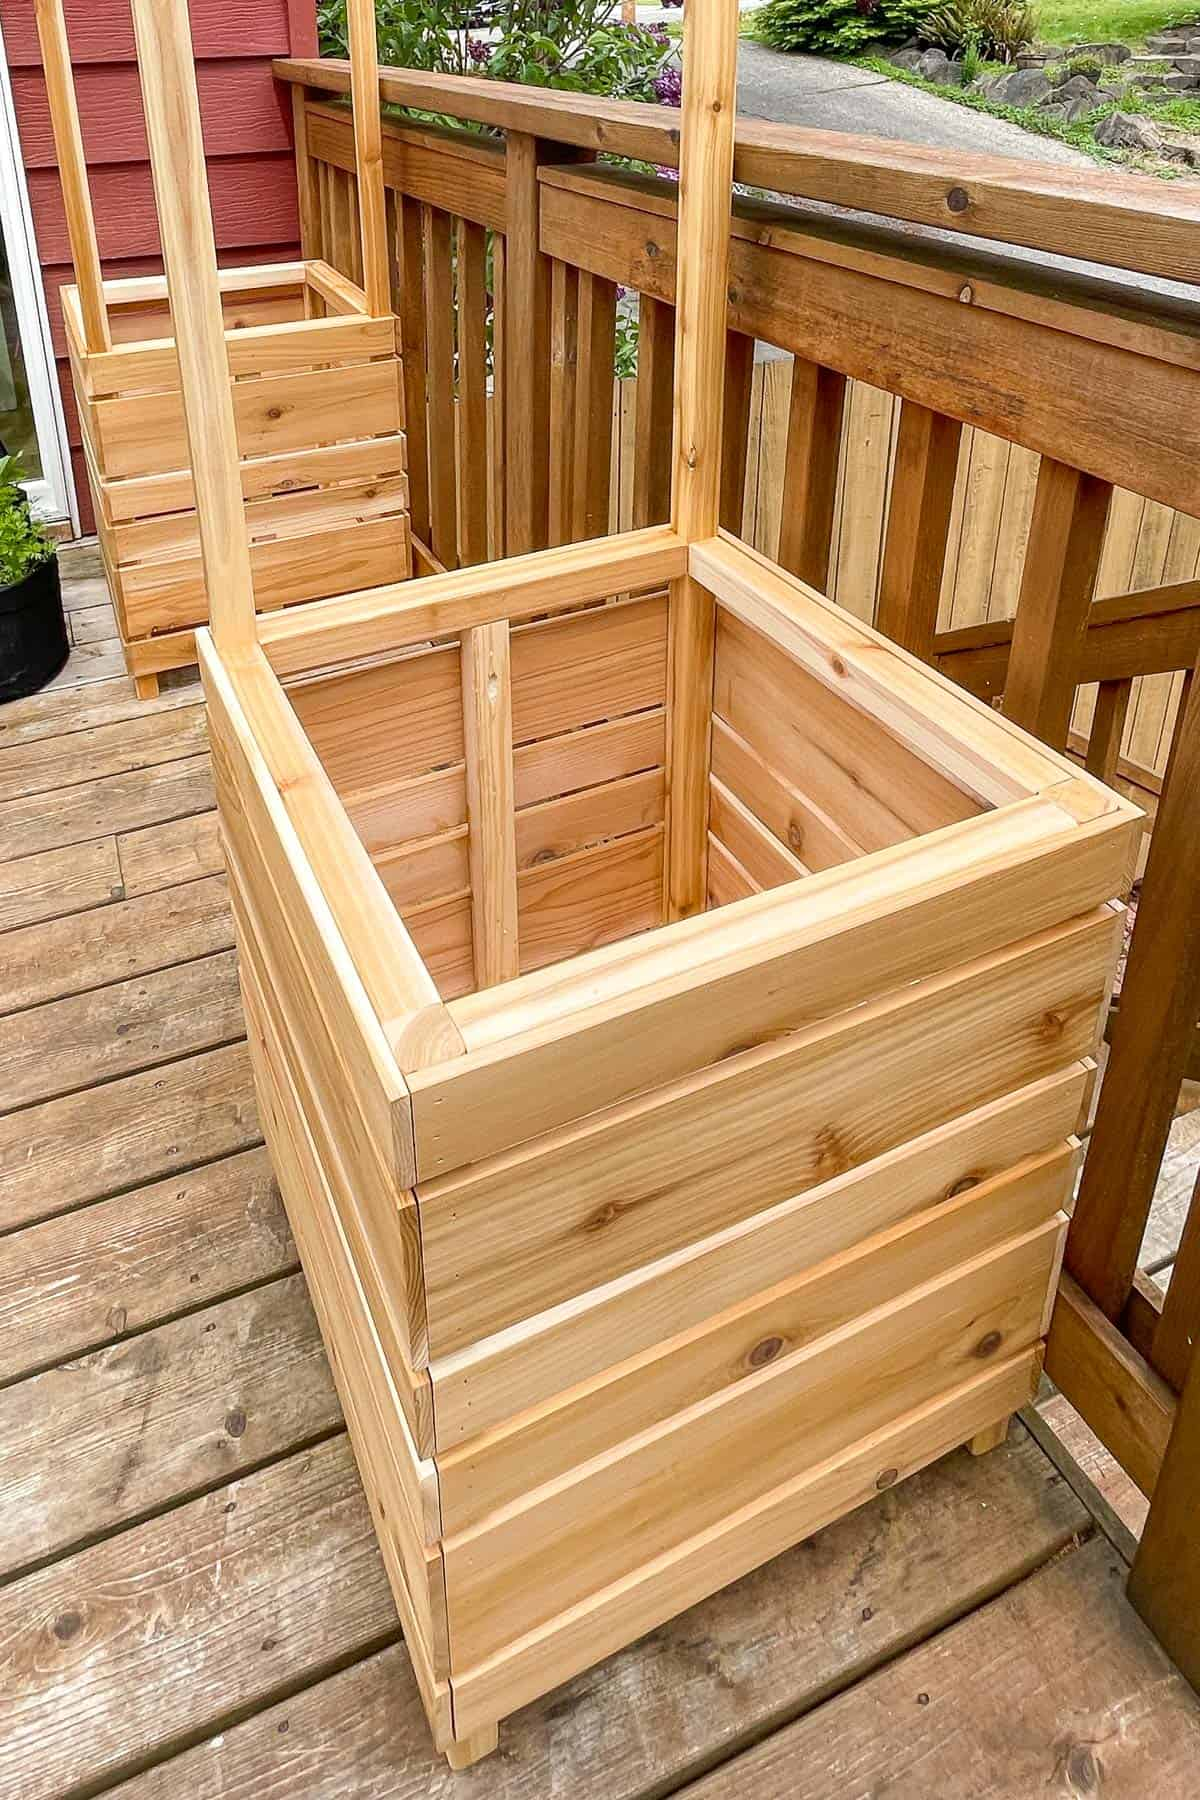 side planter boxes for plant stand in place on deck